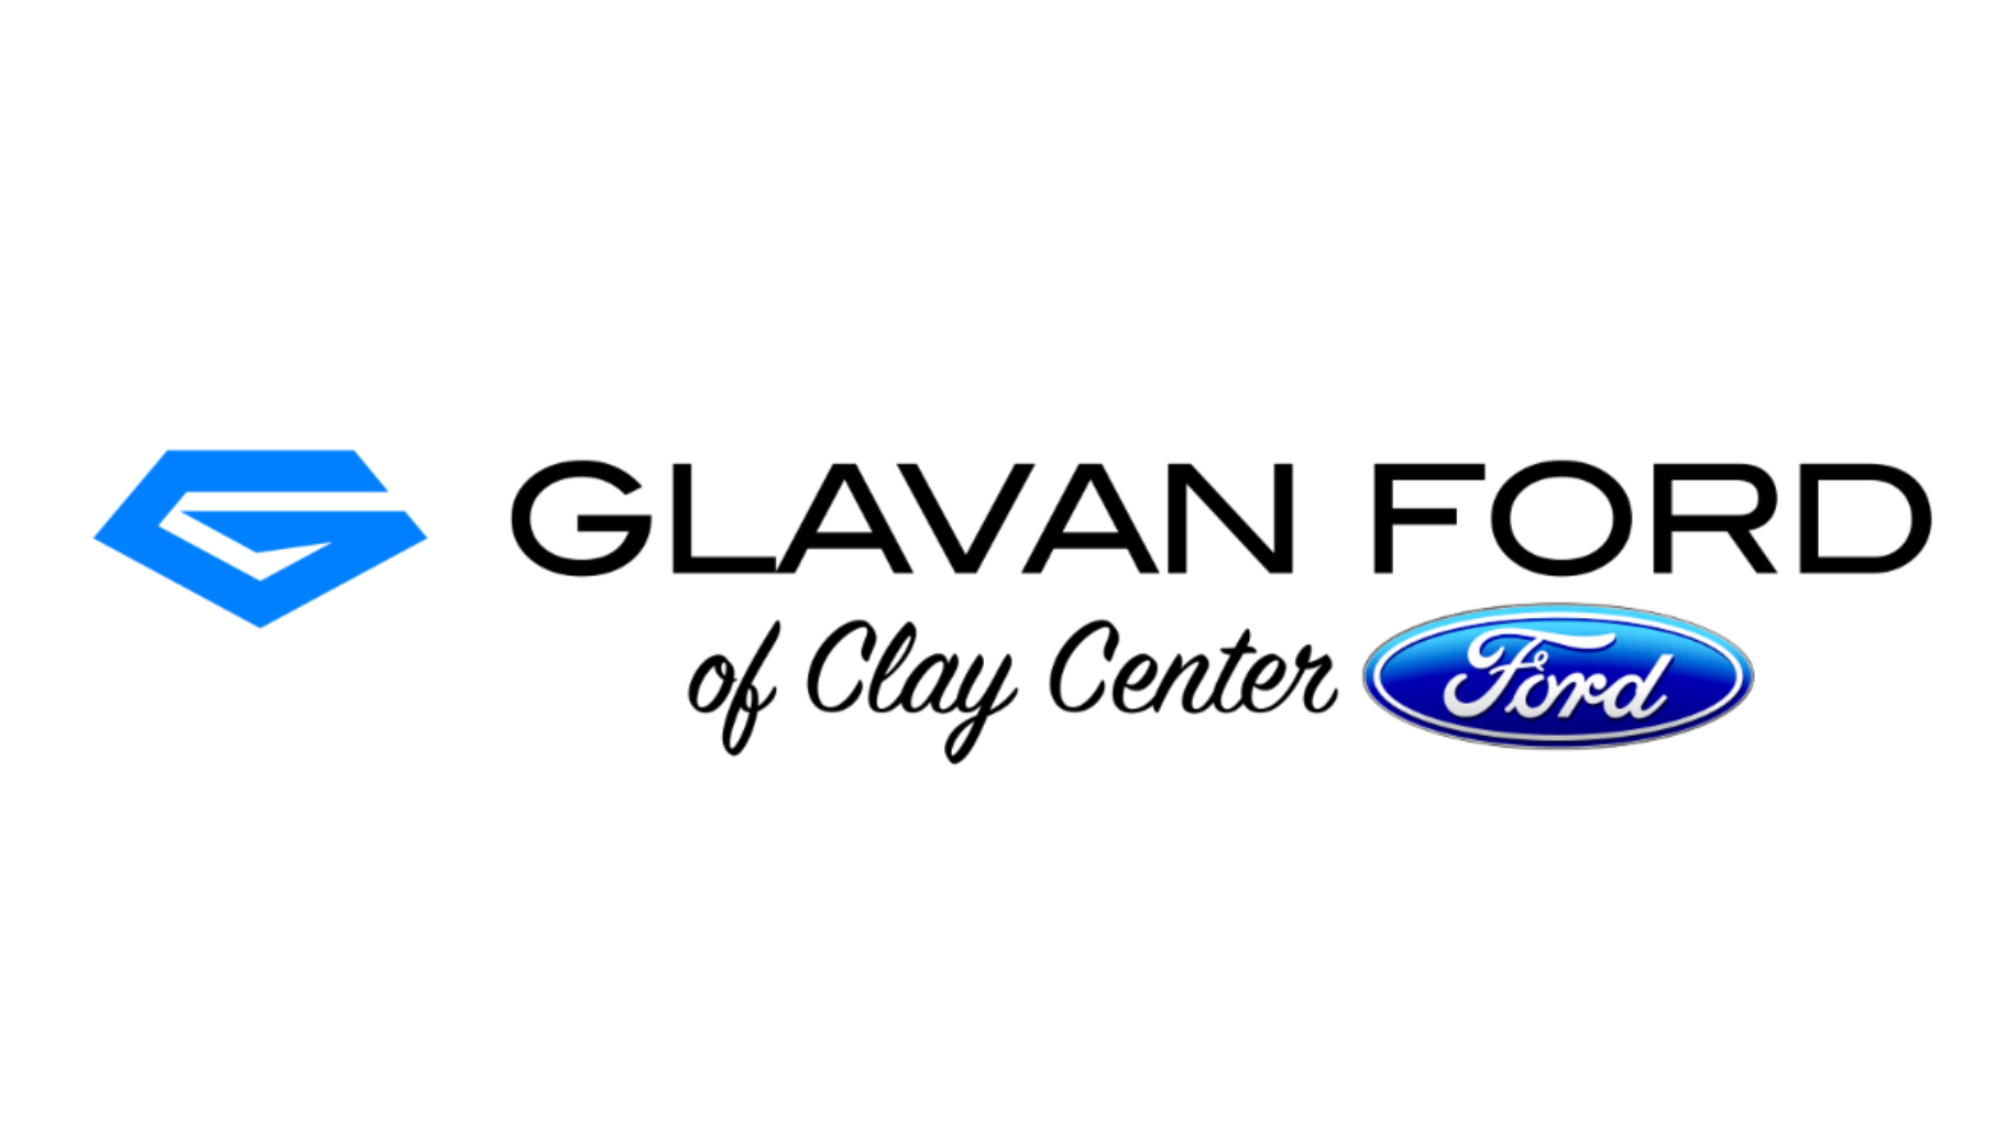 Glavan Ford of Clay Center